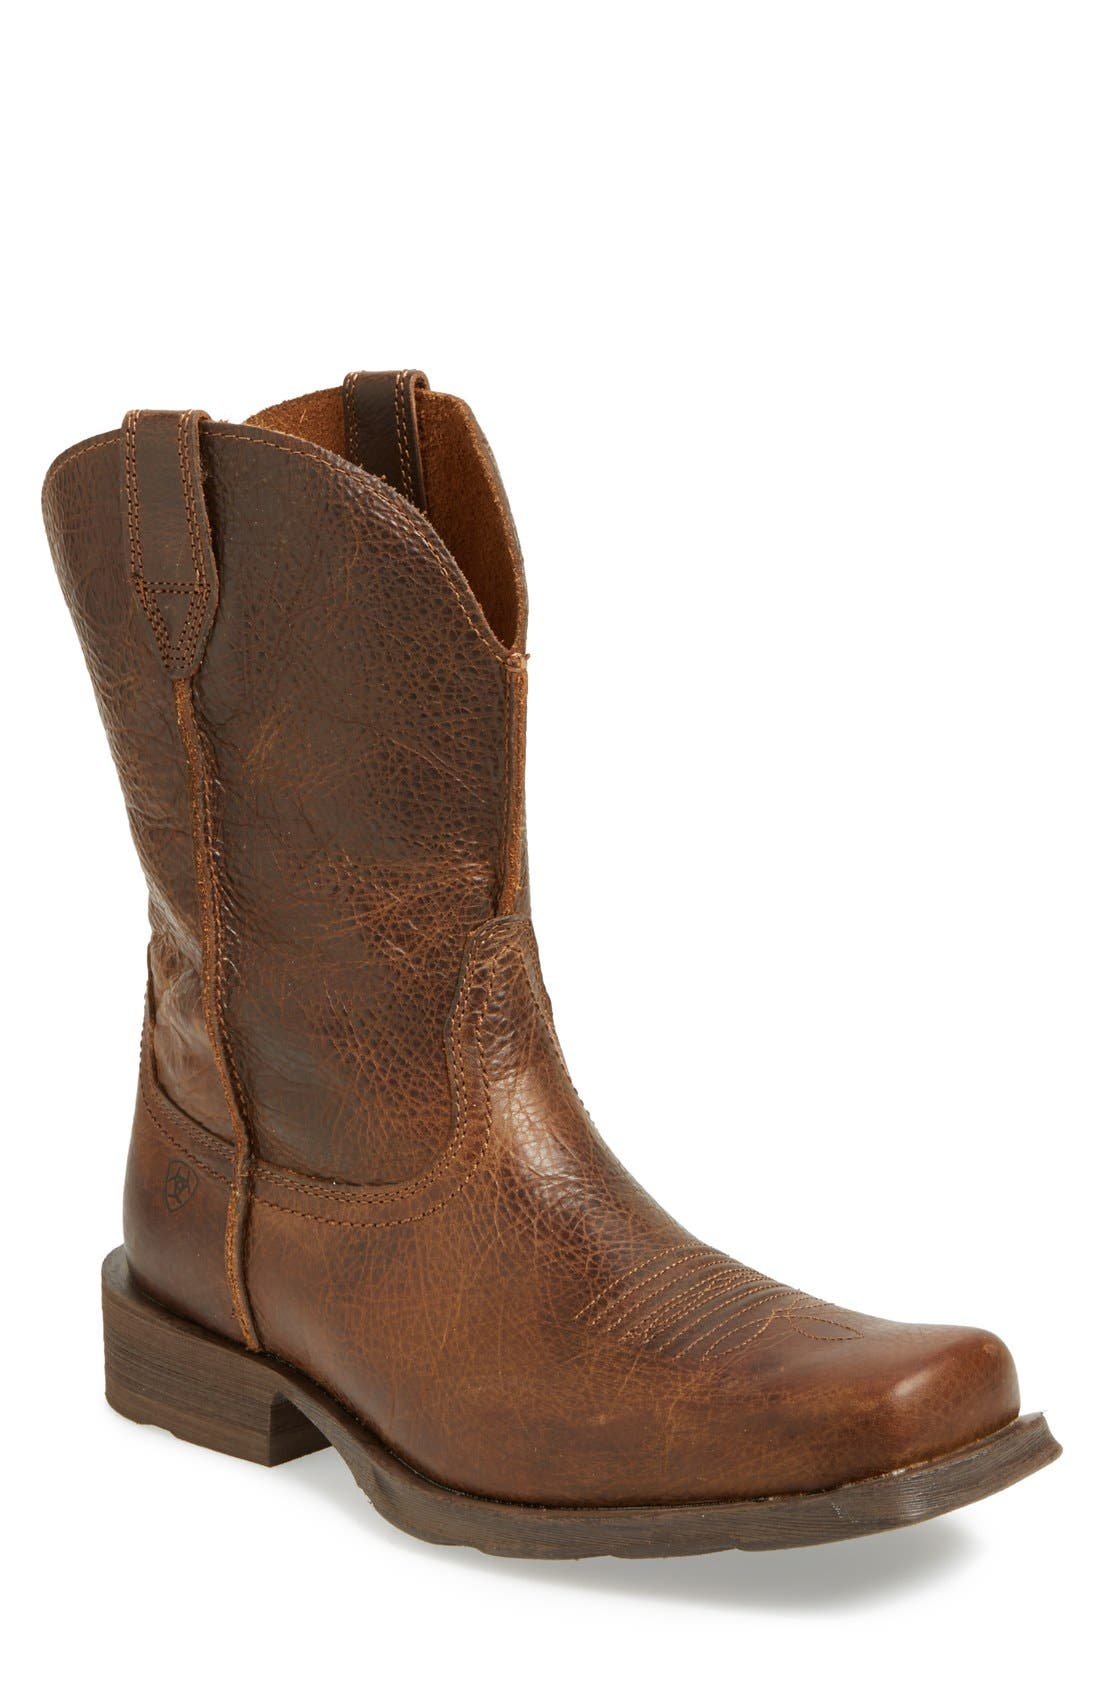 ARIAT 'Rambler' Square Toe Leather Cowboy Boot, Main, color, 200